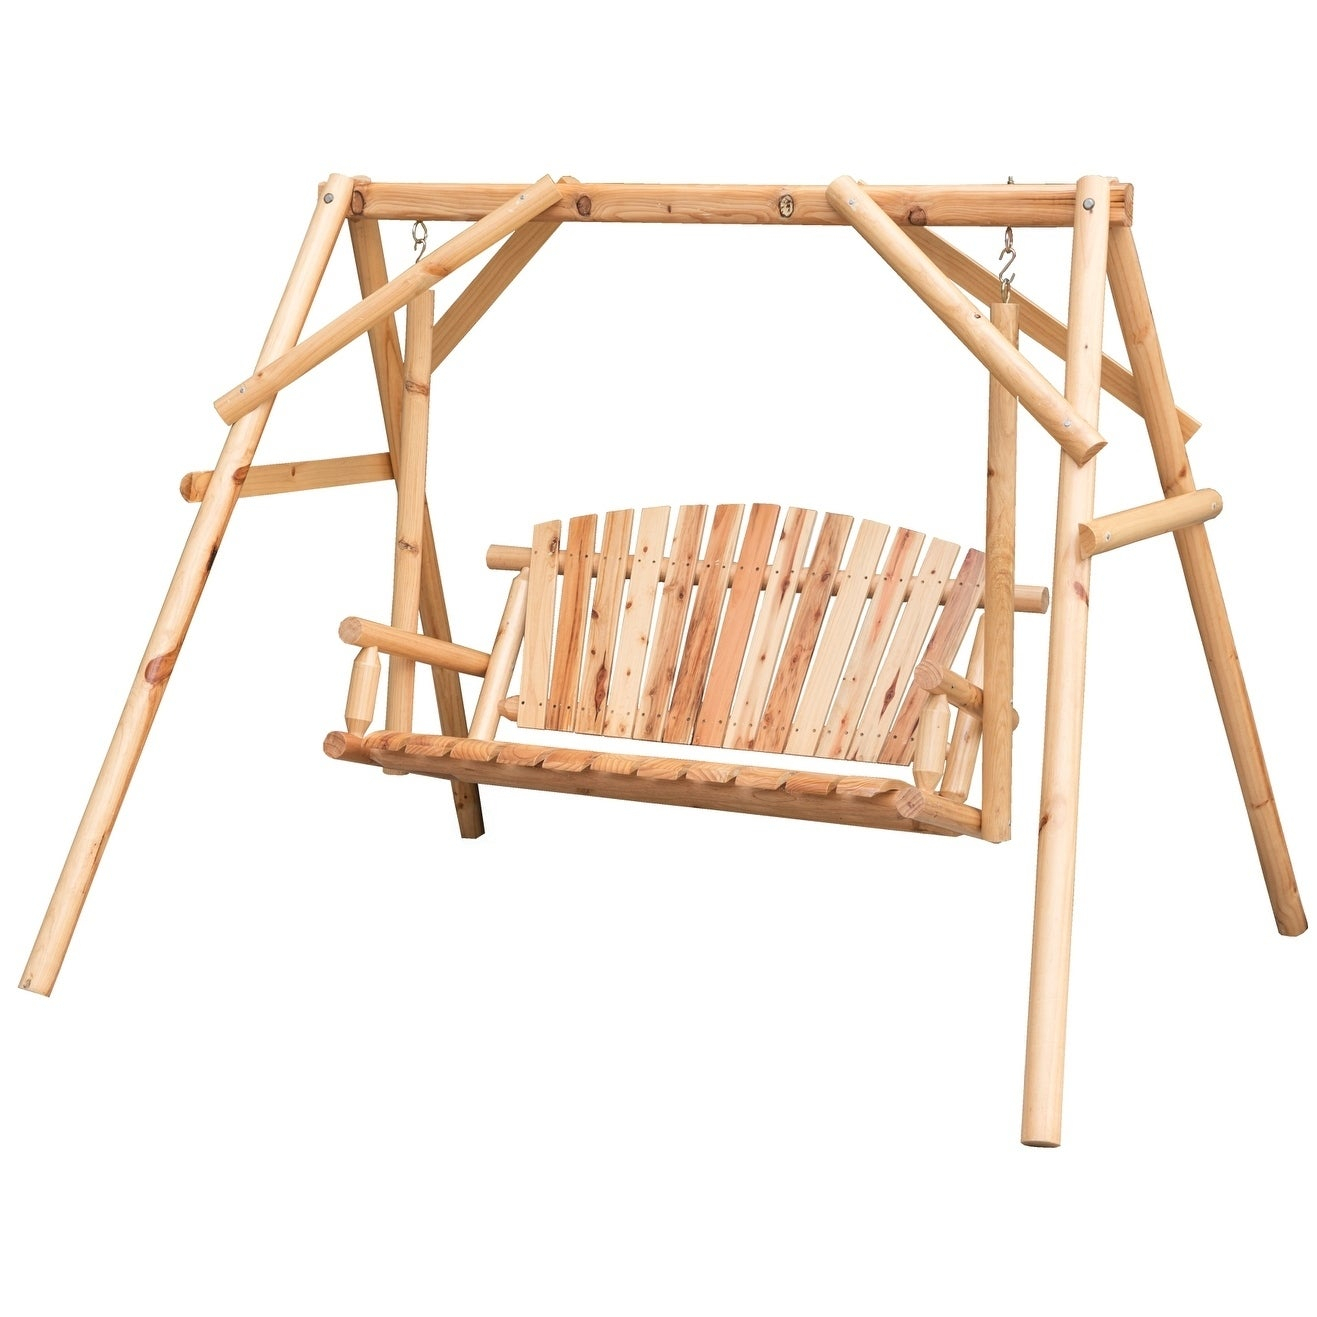 Wooden A Frame 2 Person Outdoor Porch Patio Swing Log Wood Chair Bench Pertaining To 2 Person Light Teak Oil Wood Outdoor Swings (View 10 of 25)